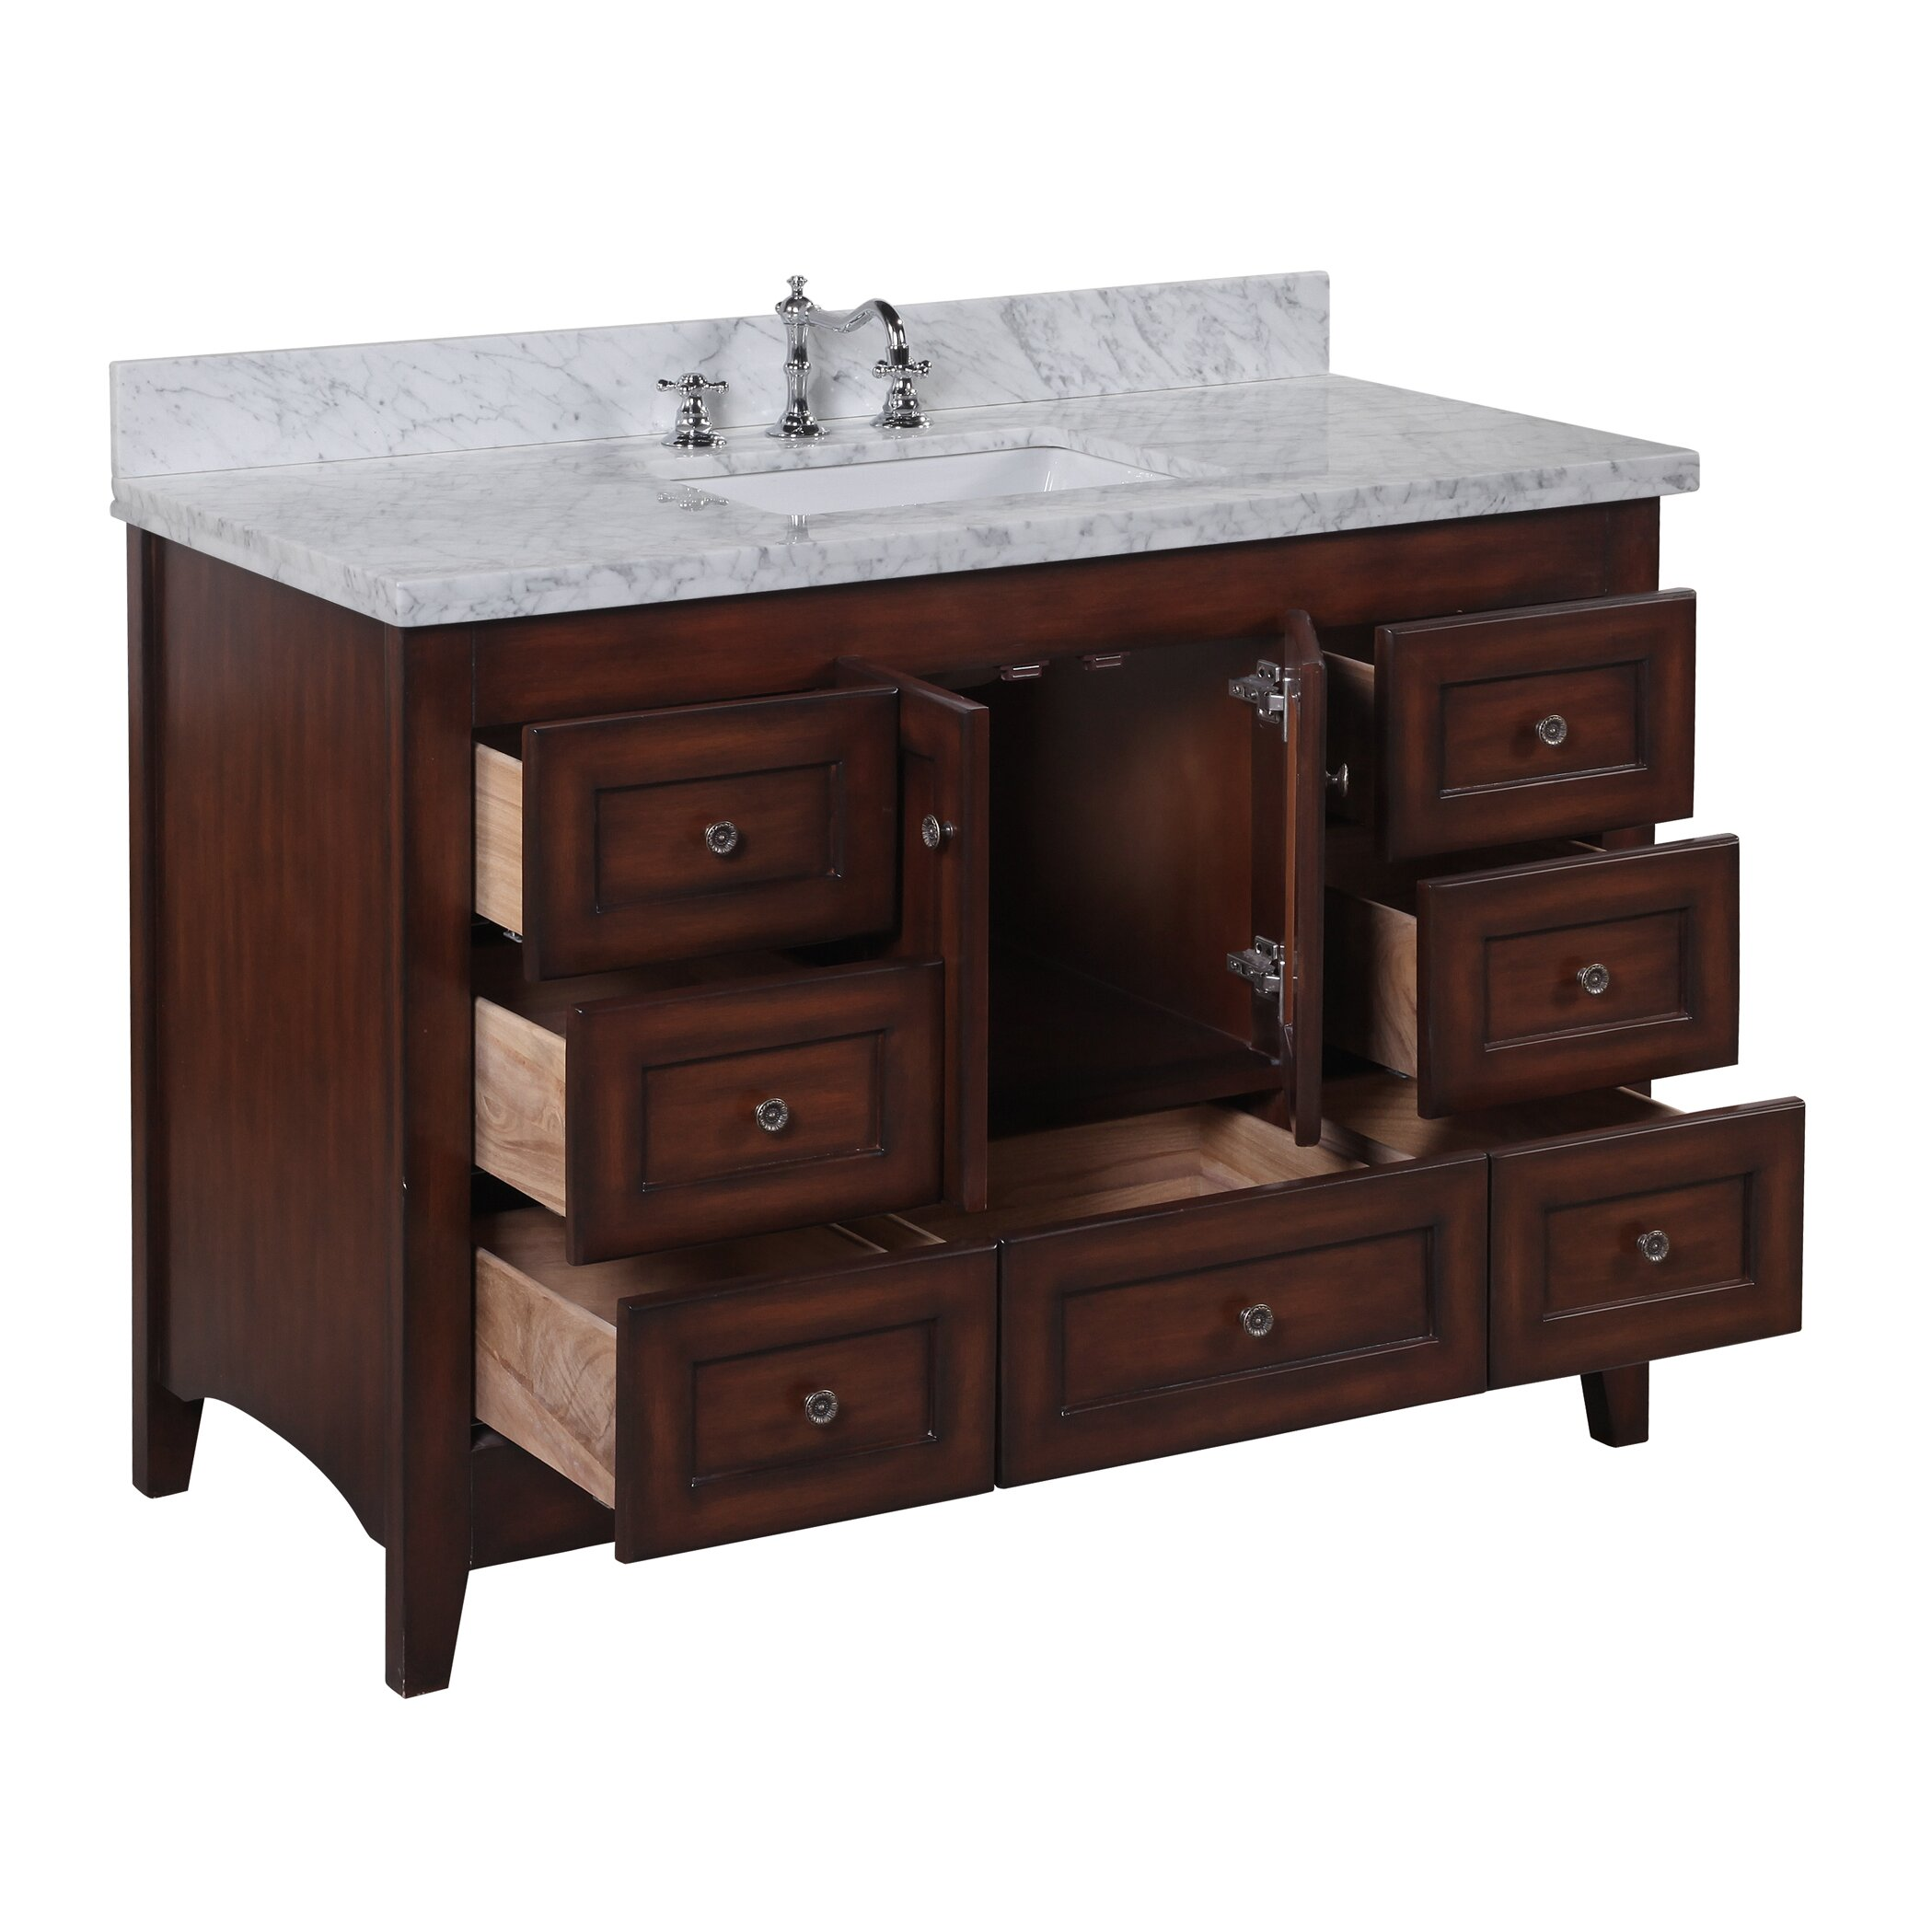 Kbc abbey 48 single bathroom vanity set reviews wayfair for Single bathroom vanity